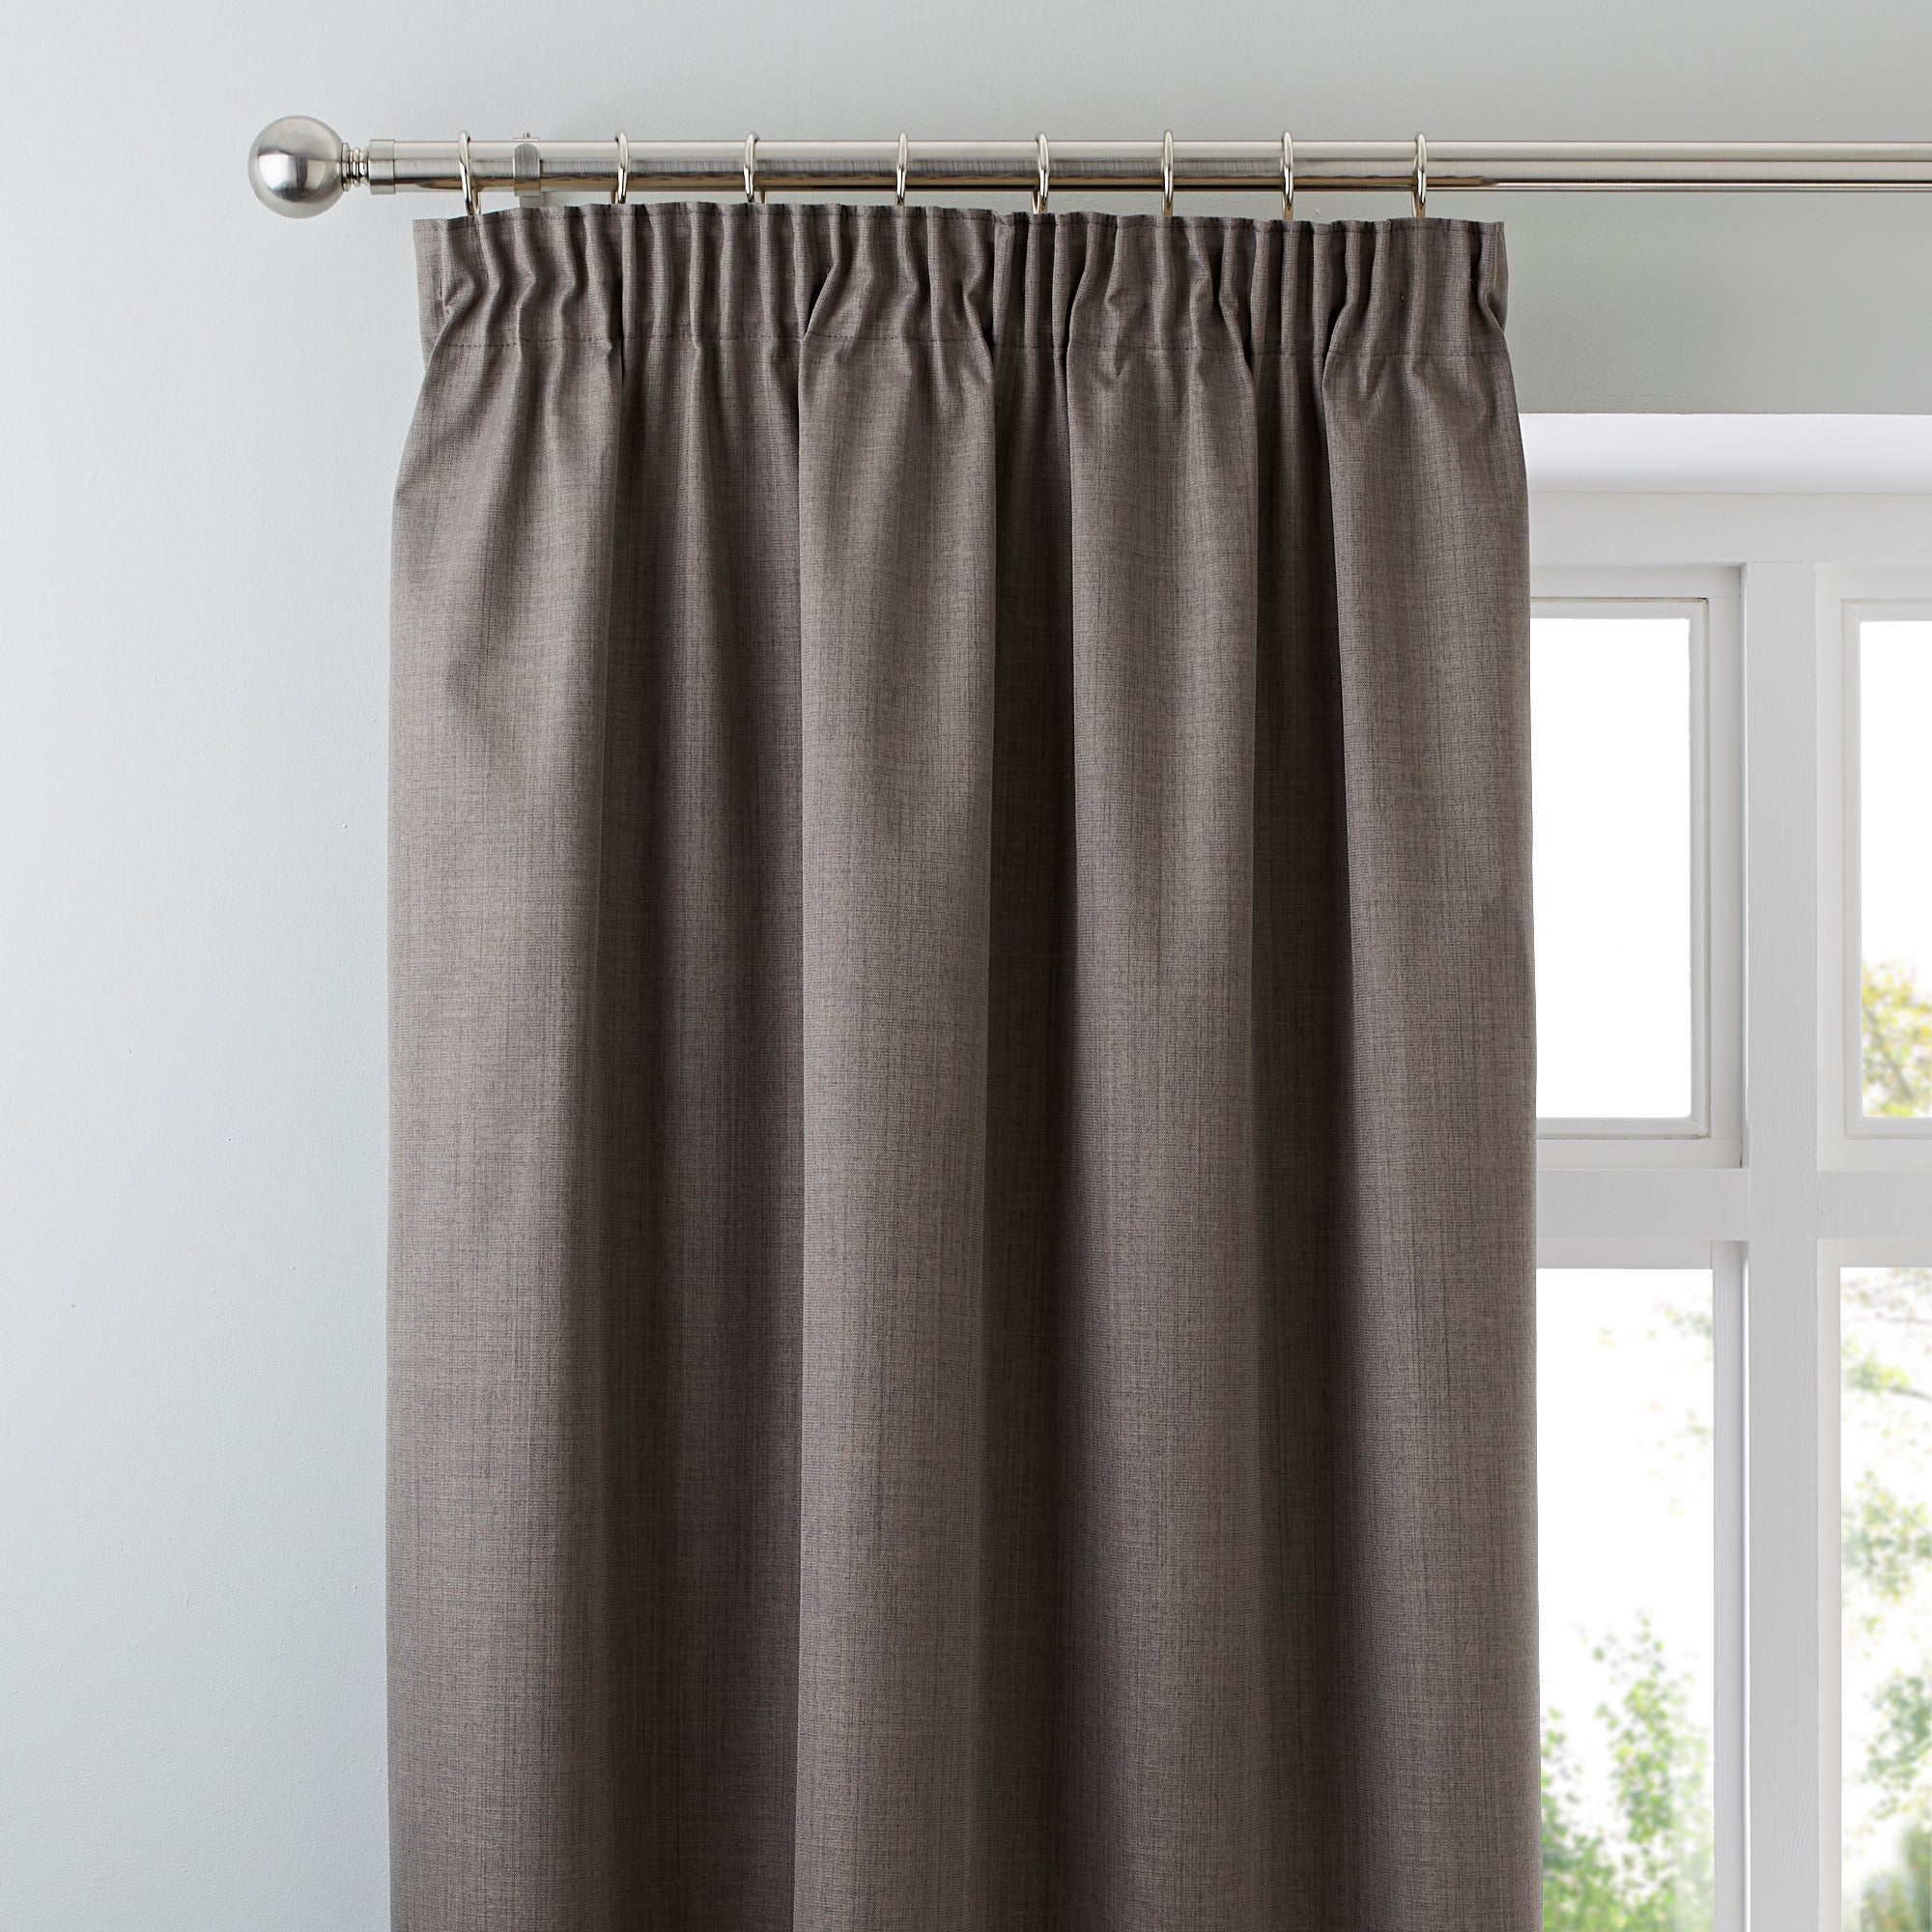 Waters and Noble Stone Solar Blackout Pencil Pleat Curtains